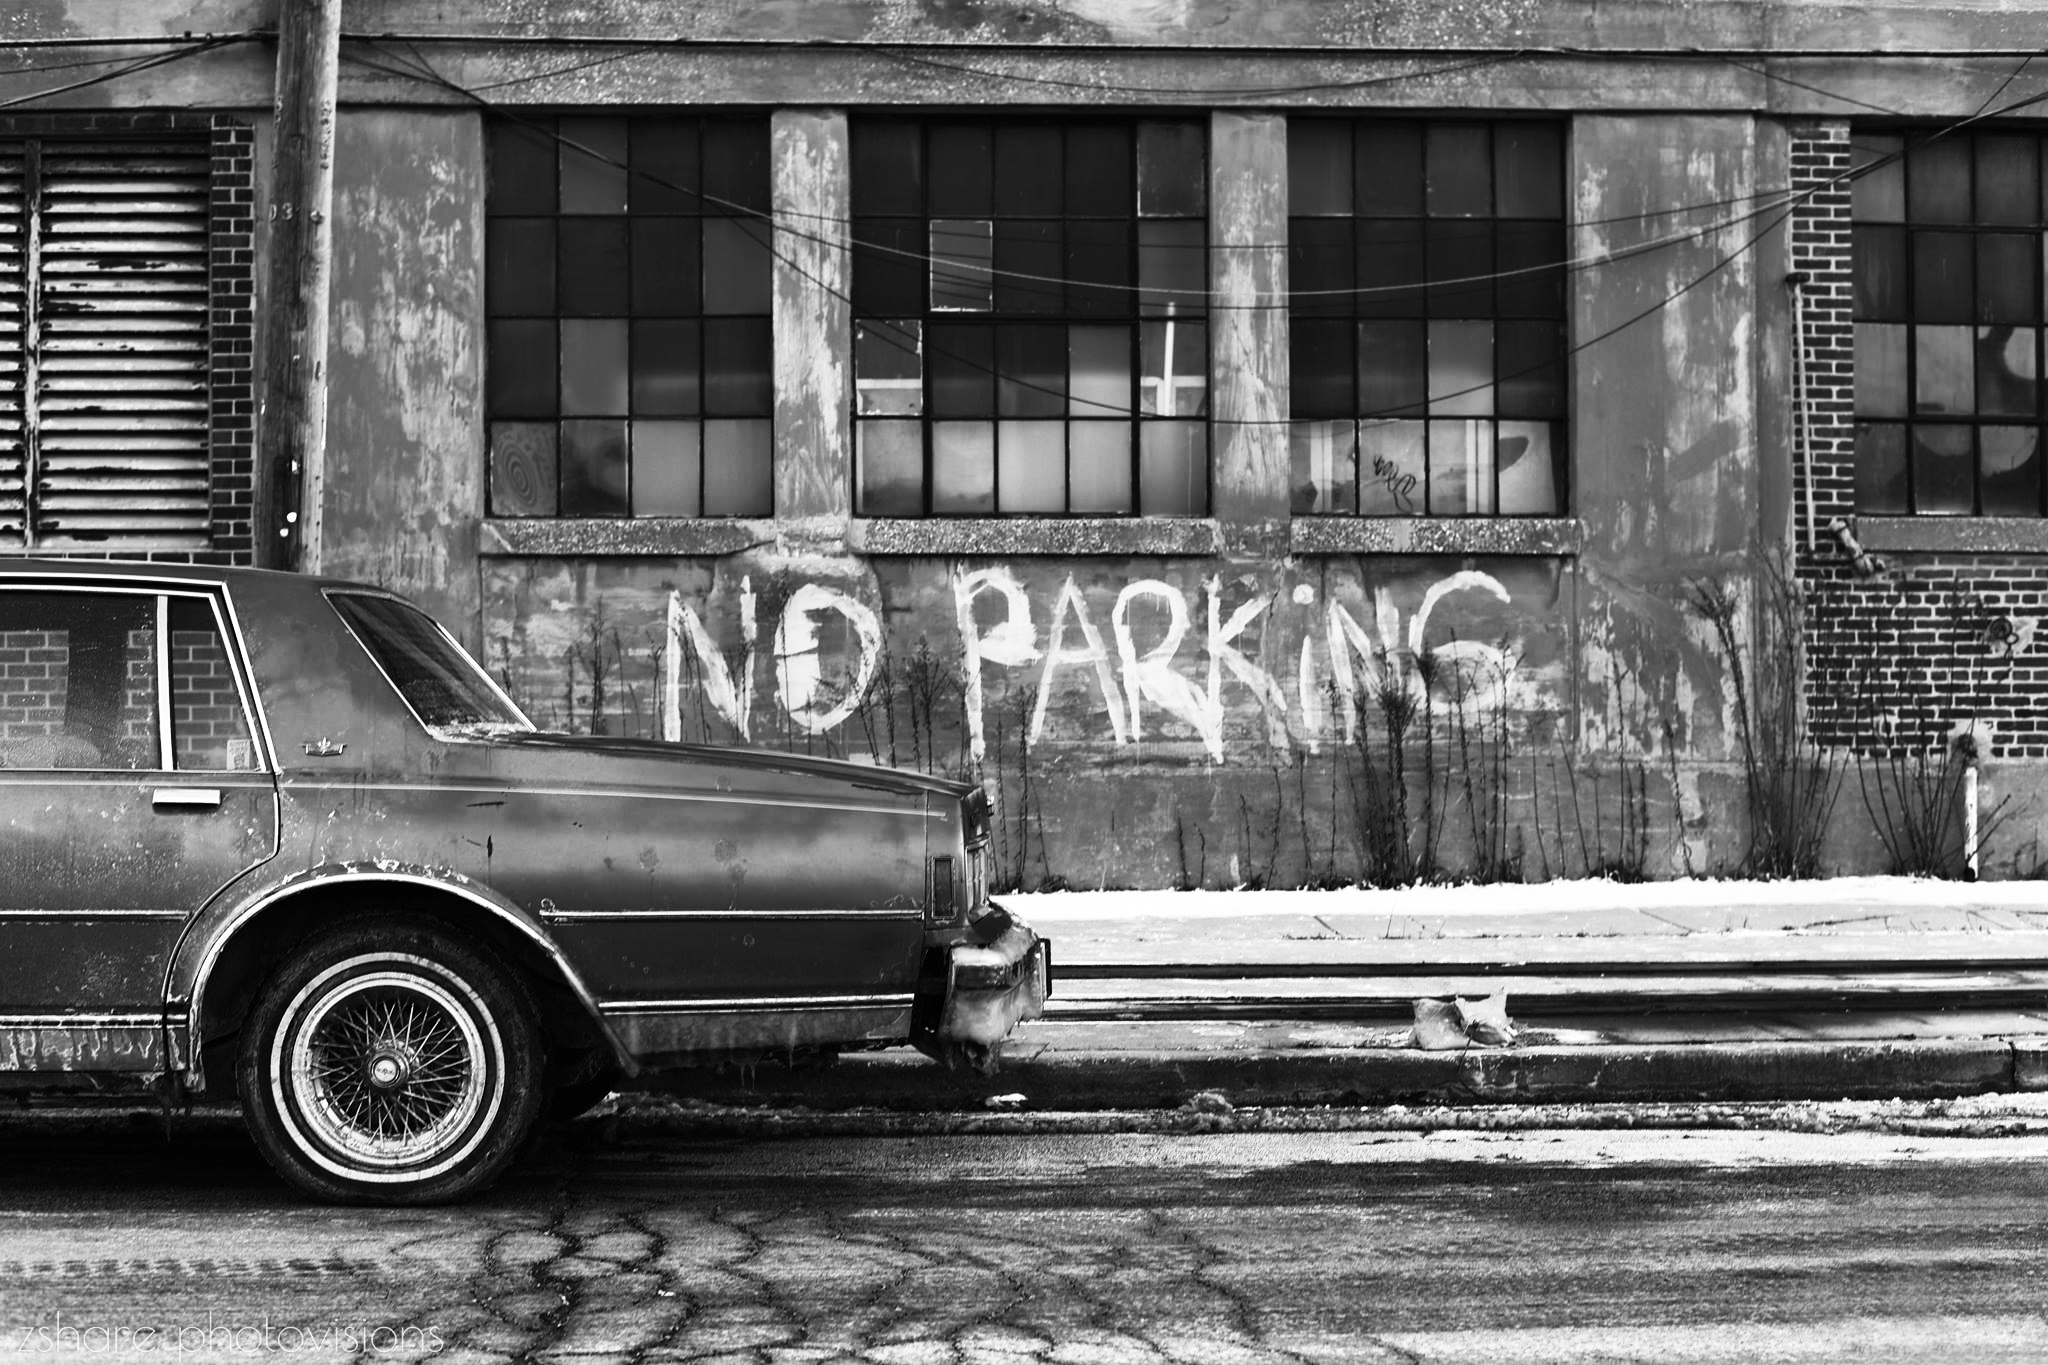 no parking chicago old car black and white street photo by zshare photovisions